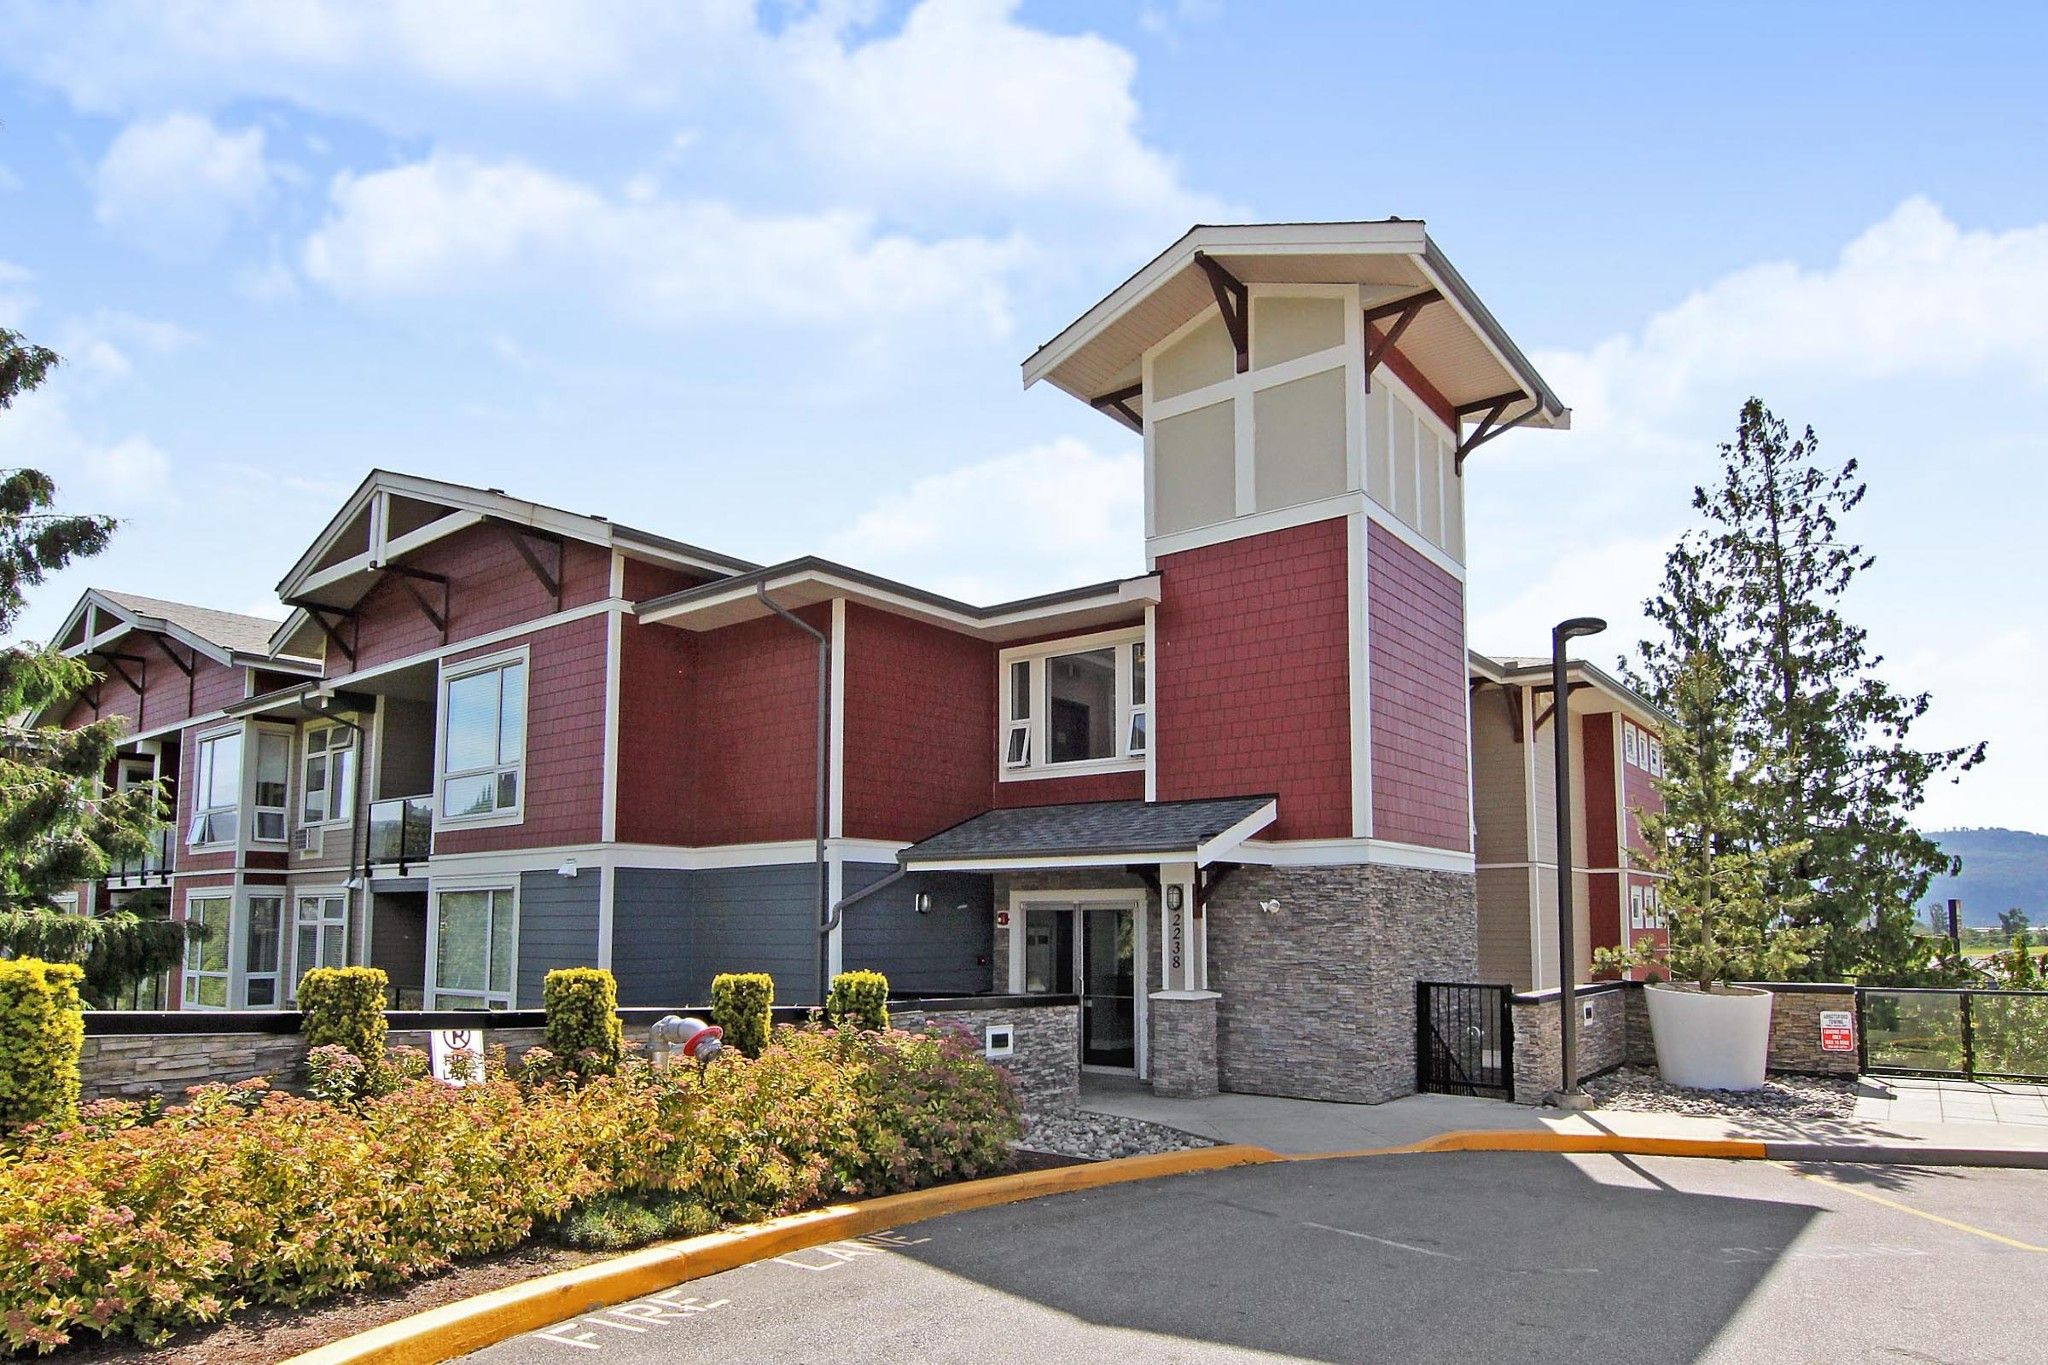 """Main Photo: 104 2238 WHATCOM Road in Abbotsford: Abbotsford East Condo for sale in """"Waterleaf"""" : MLS®# R2378509"""